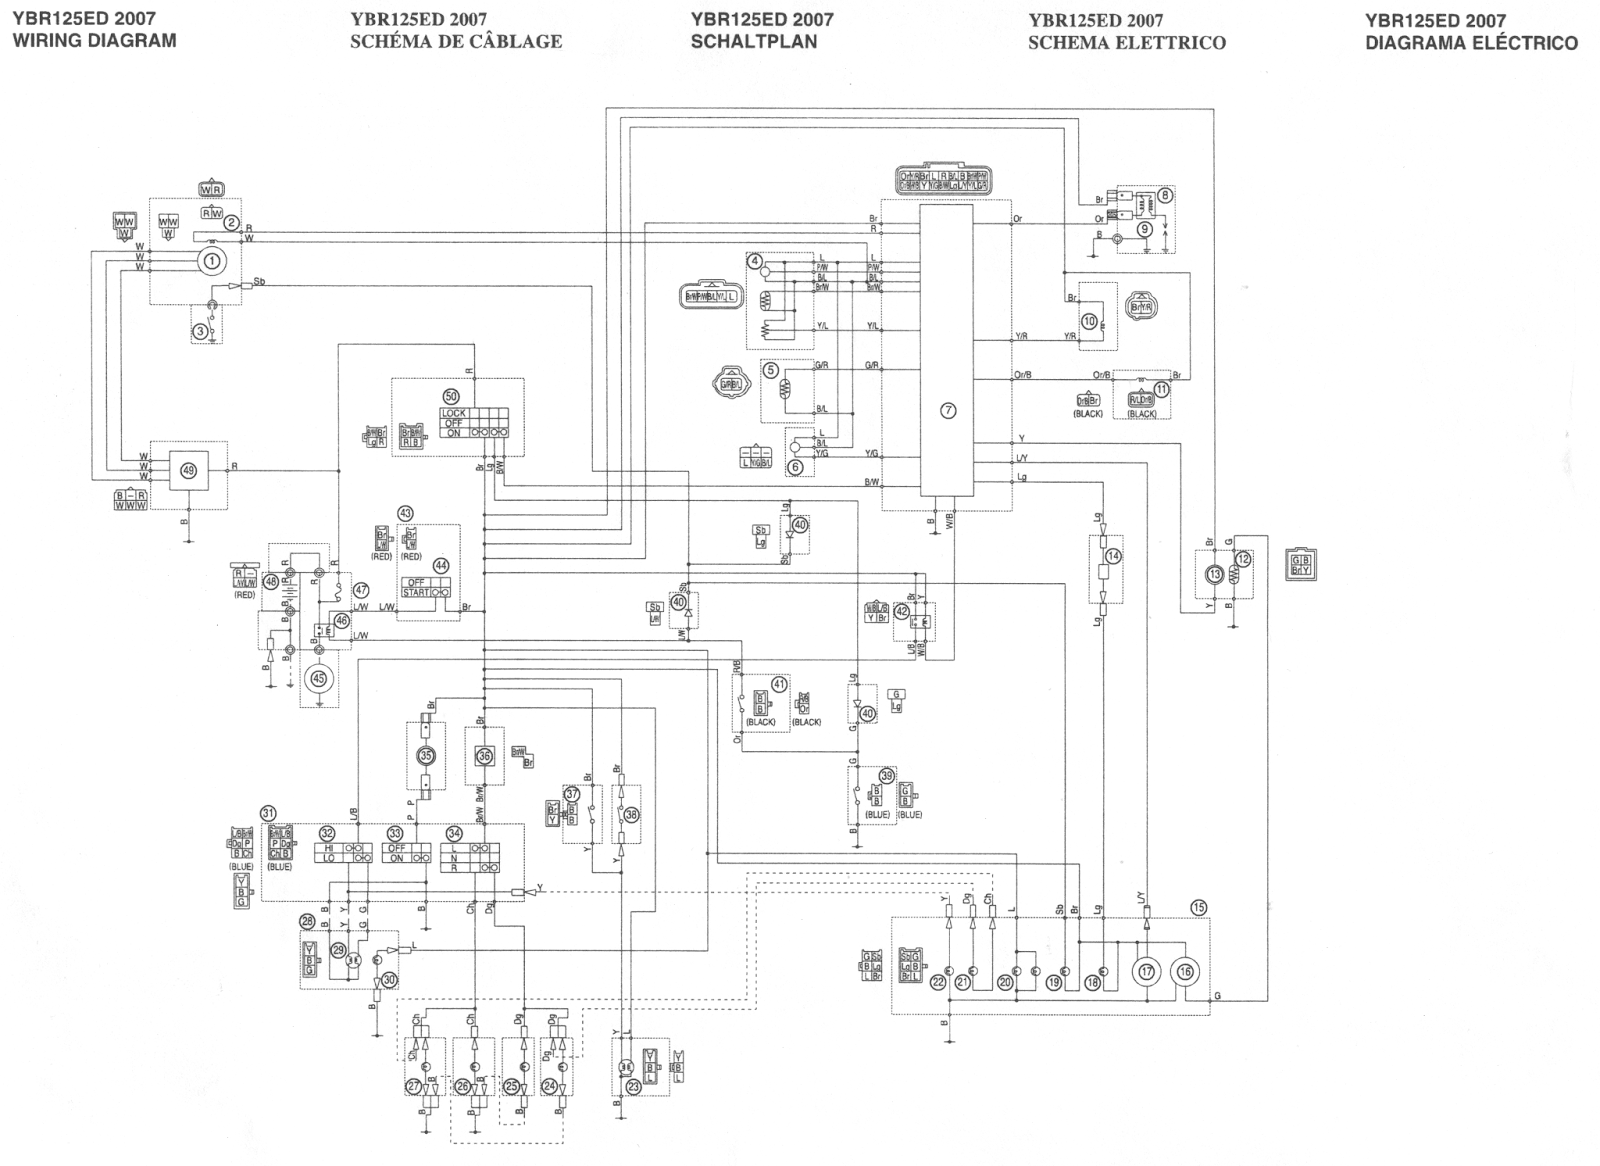 Yamaha YBR 125 Owner Blog : Yamaha YBR 125 electrical system , wiring diagrams and components .